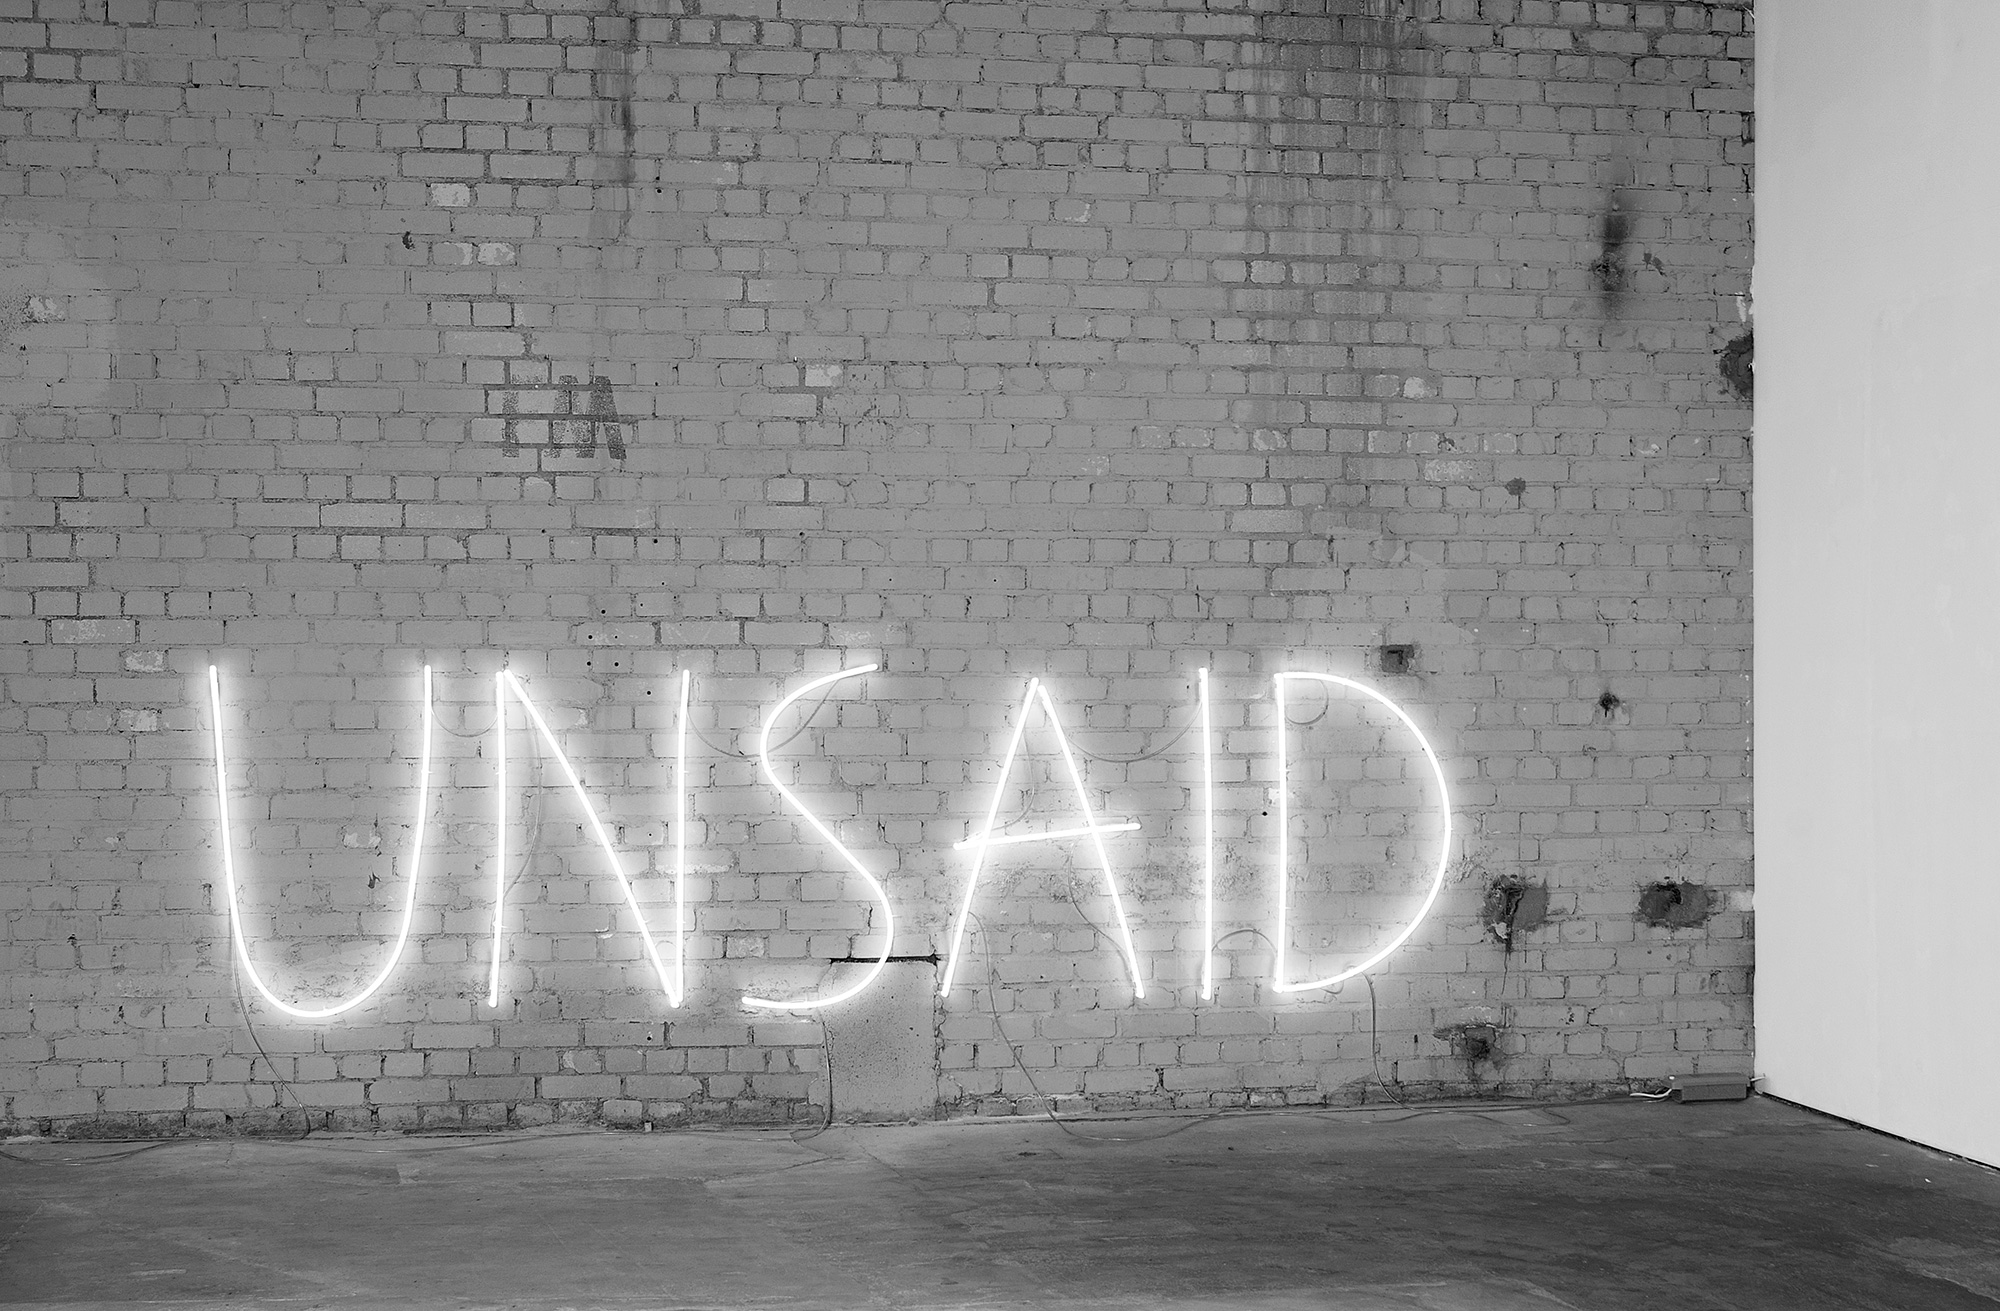 Famed, Untitled [Unsaid]